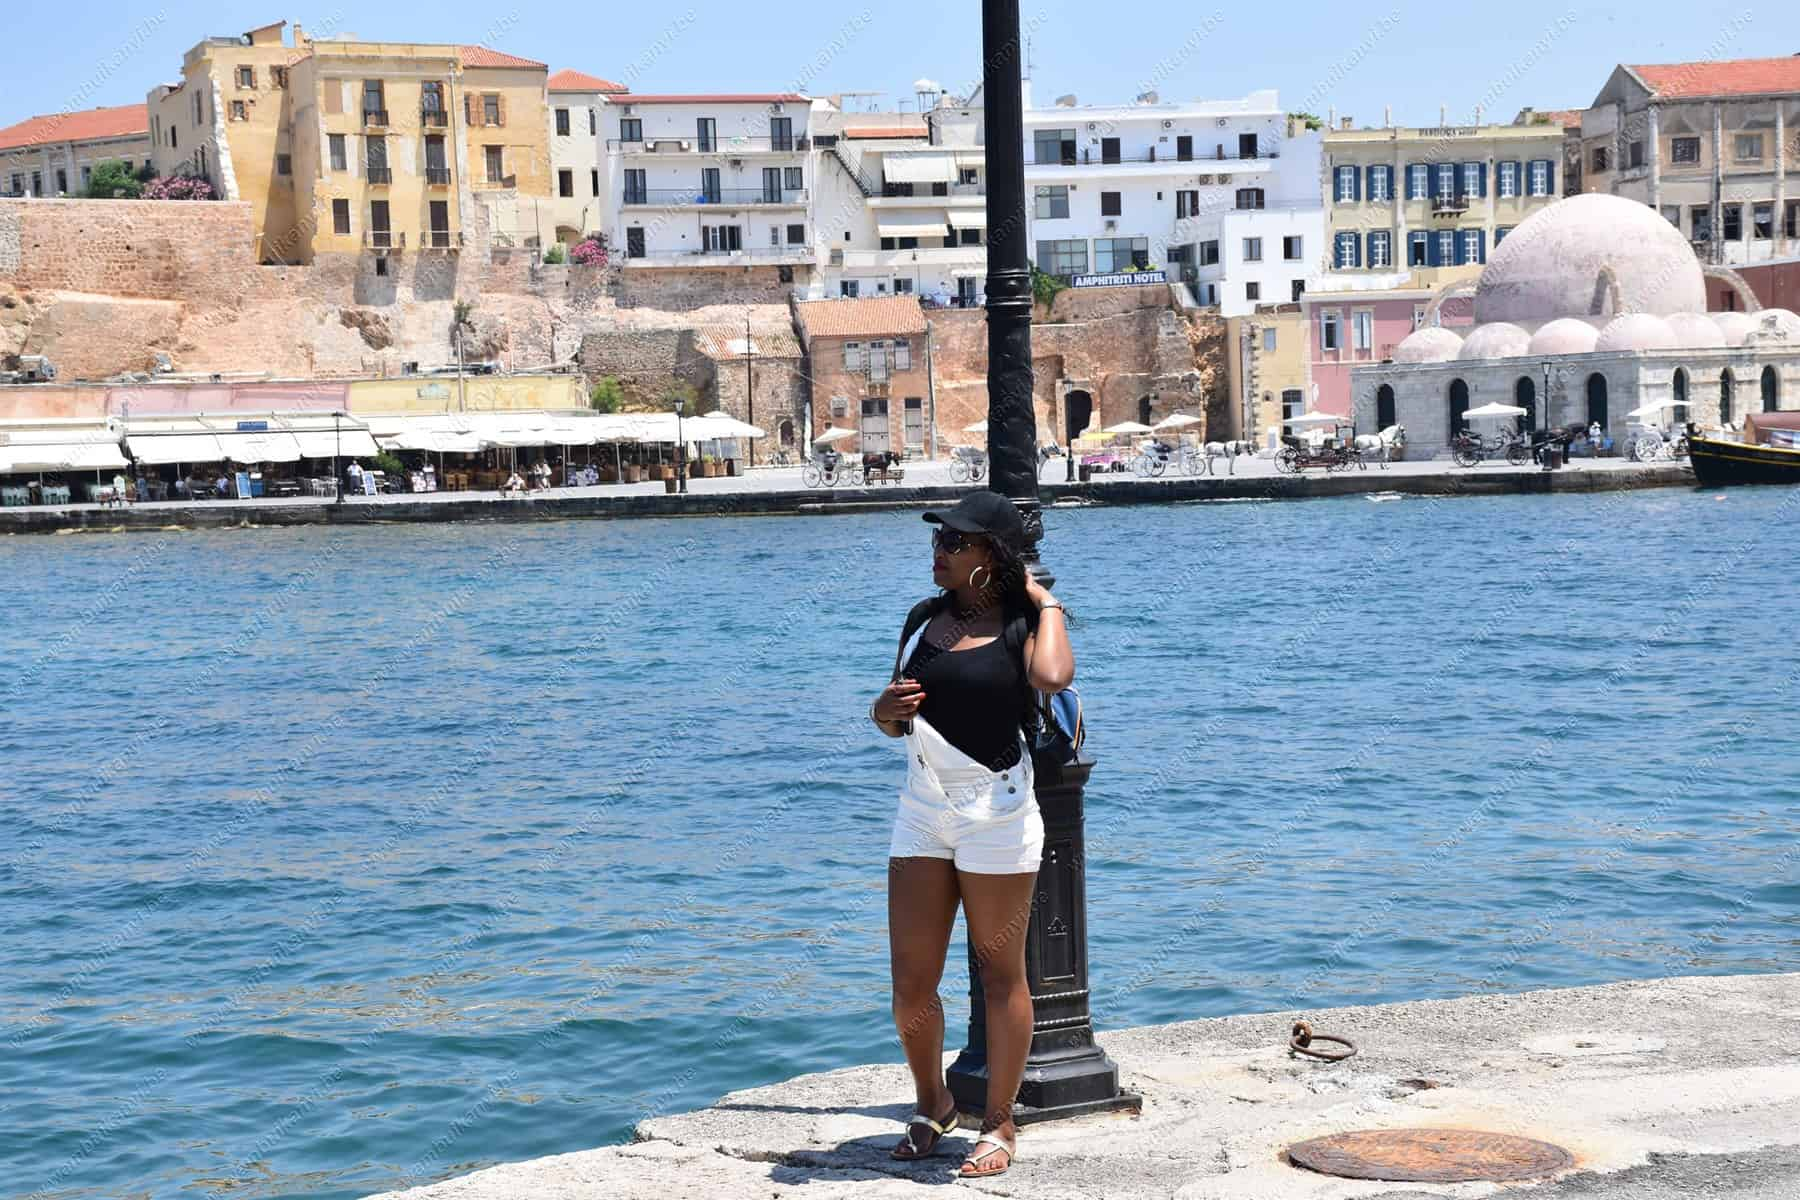 Top Experience in Chania, Crete Island